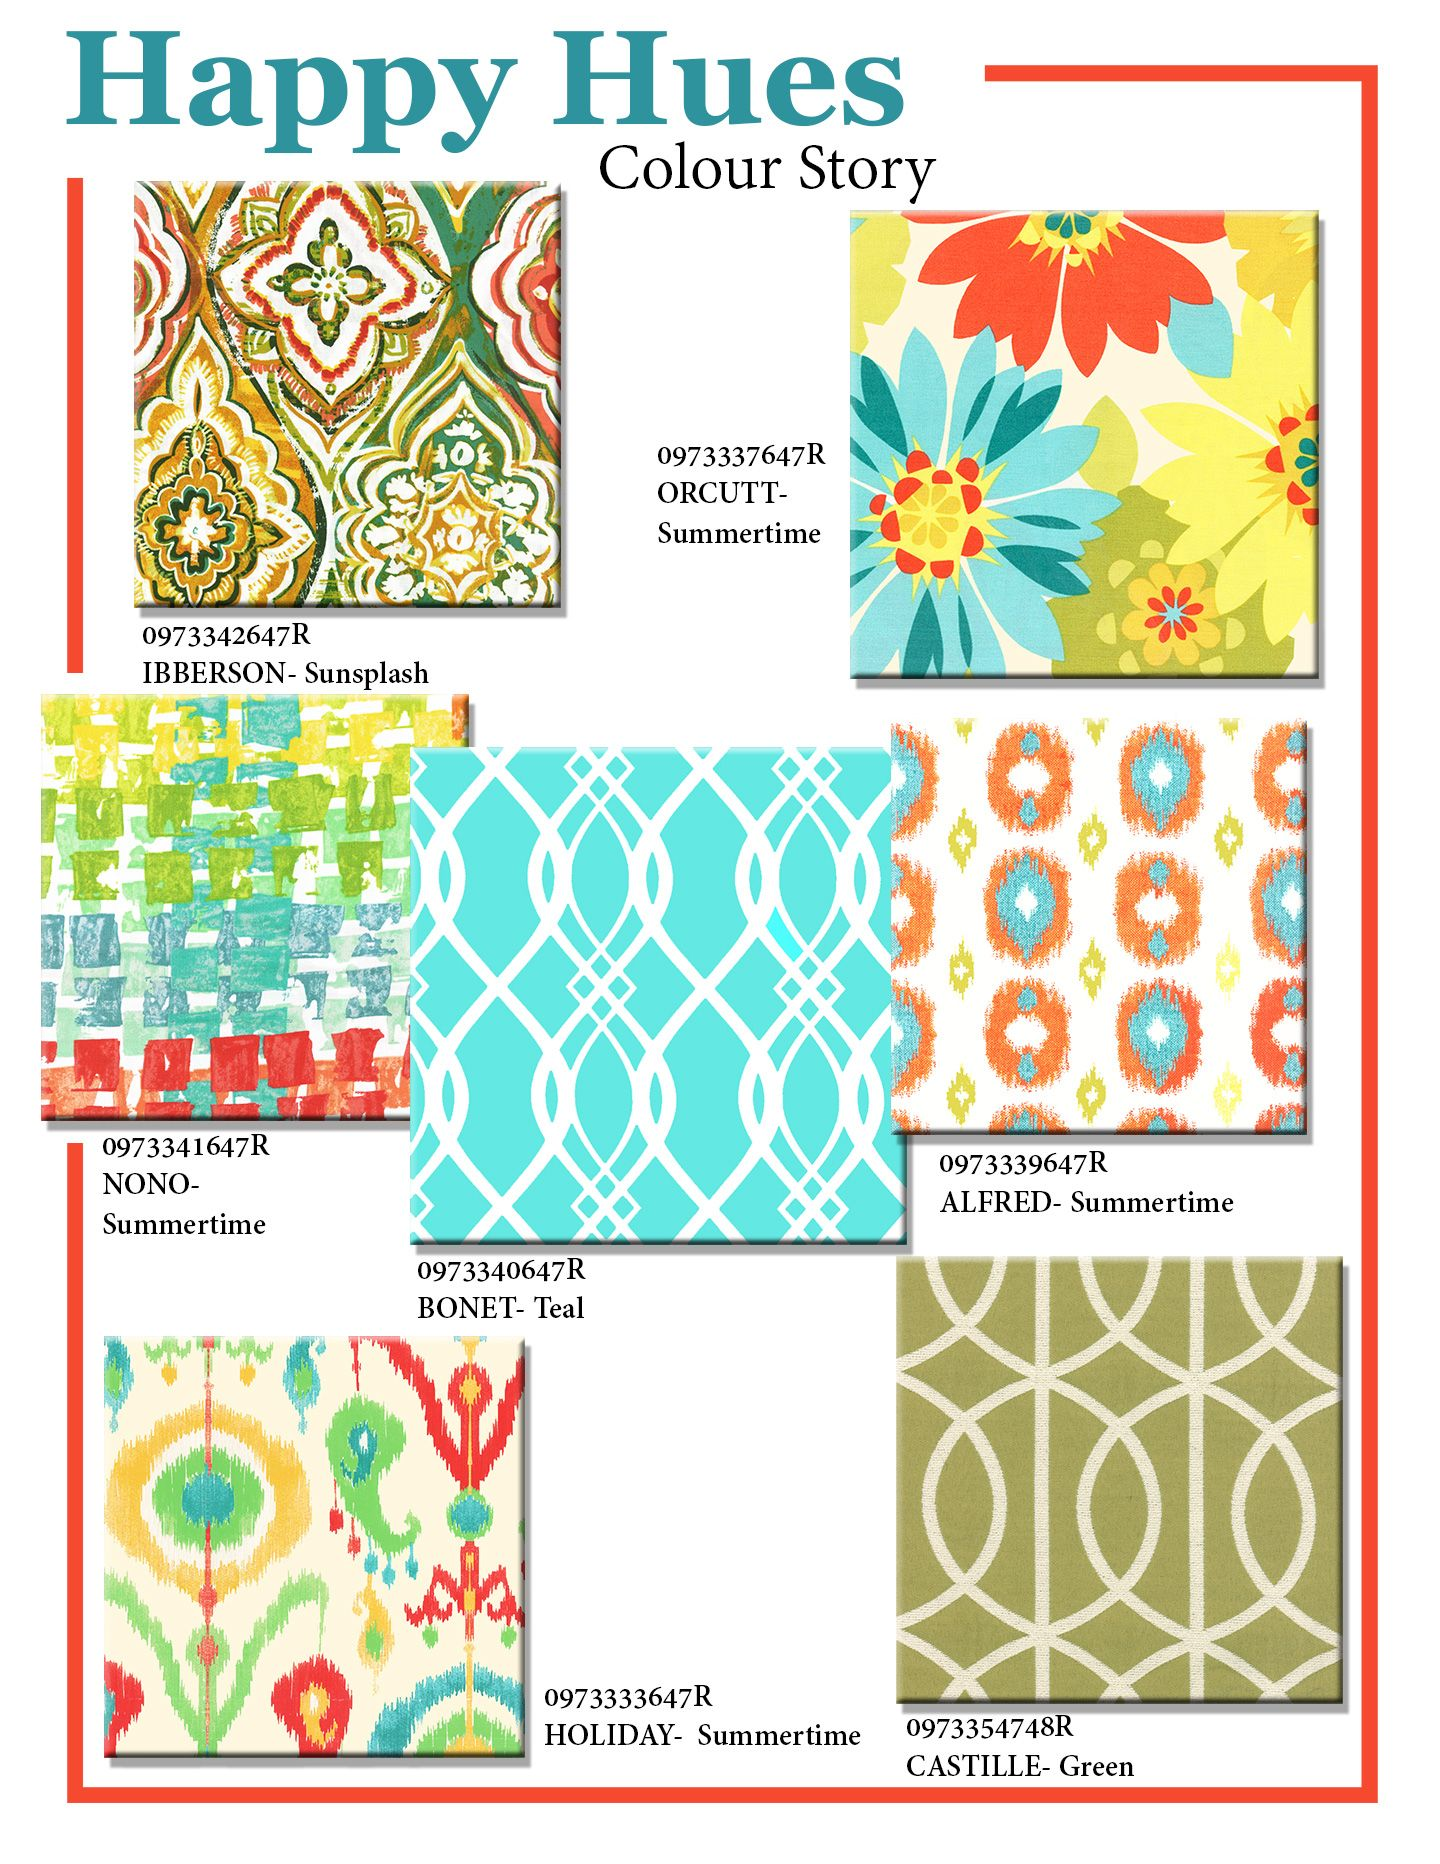 Happy Hues Summer Indoor Fabric Canada With Images Colour Story Hue Color Hues